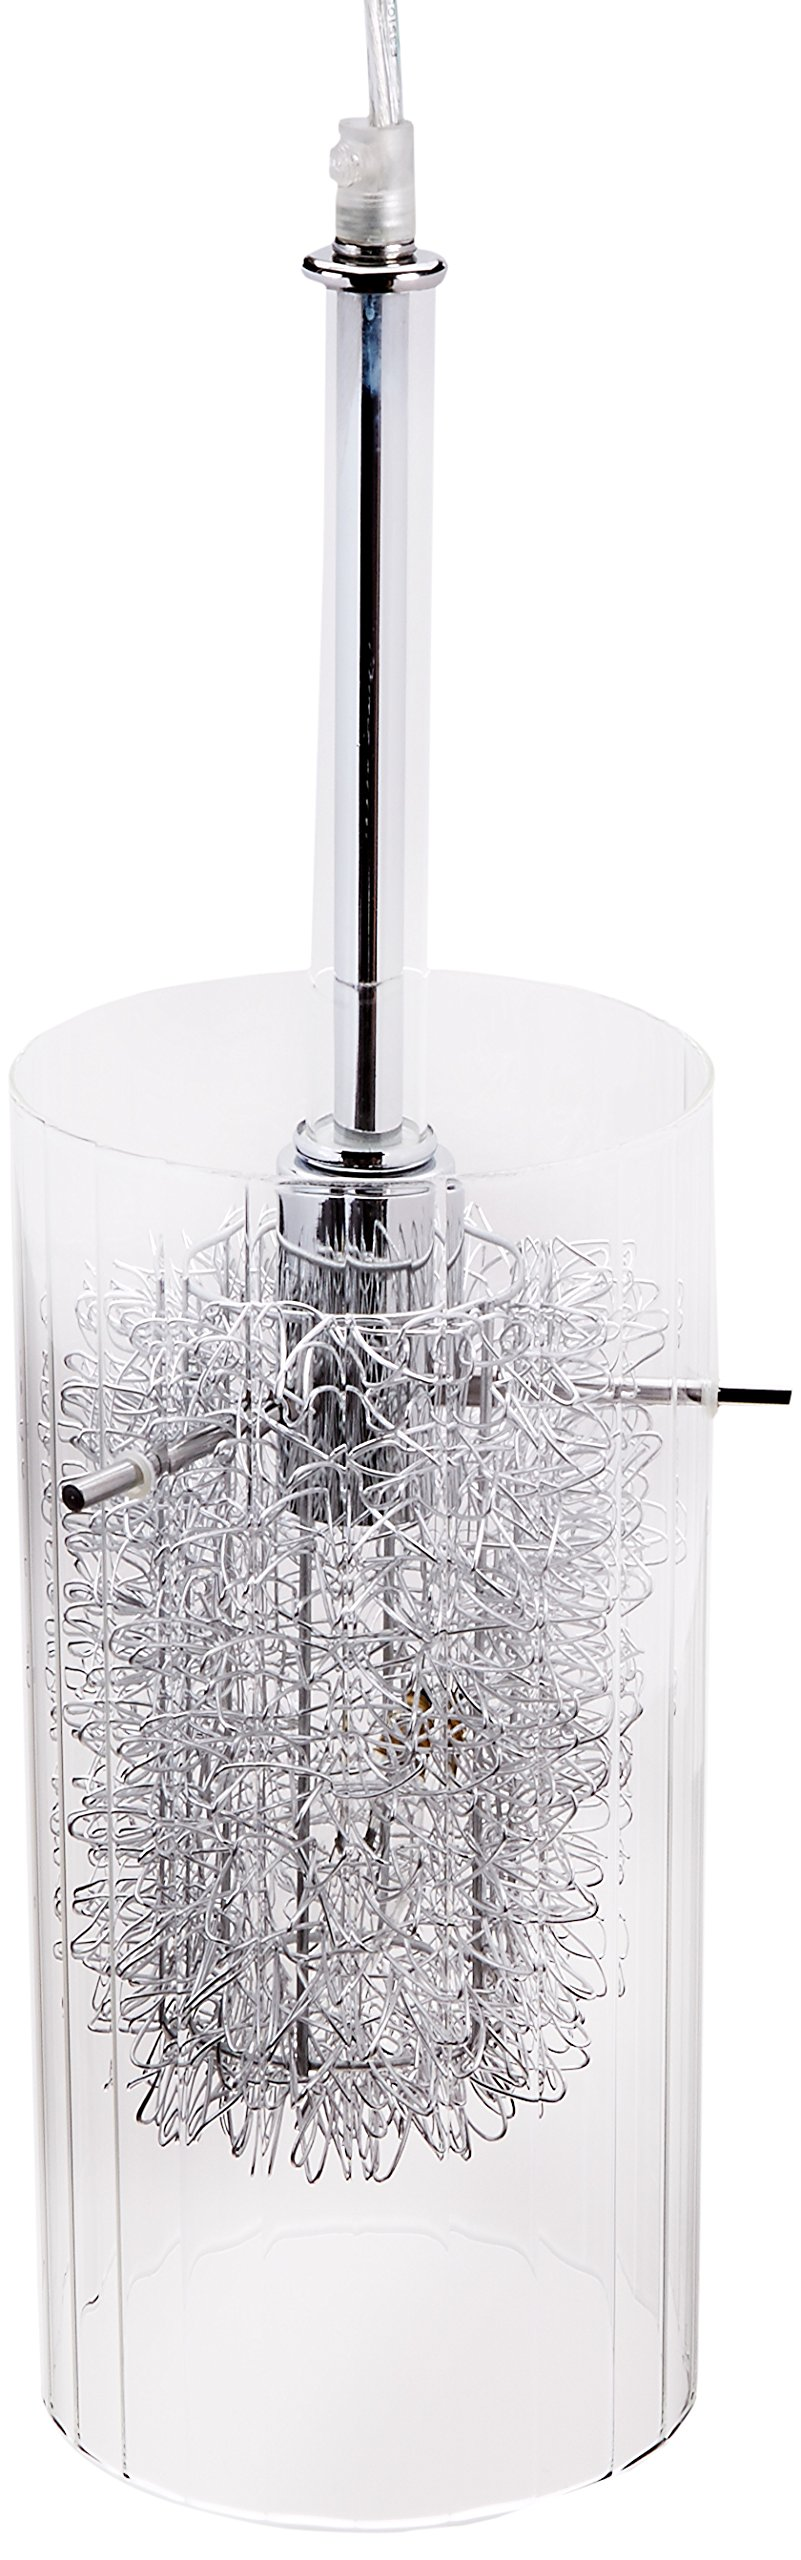 Lite Source LS-19377 Caldwell Pendant Lamp, Chrome with Clear Glass / Aluminum